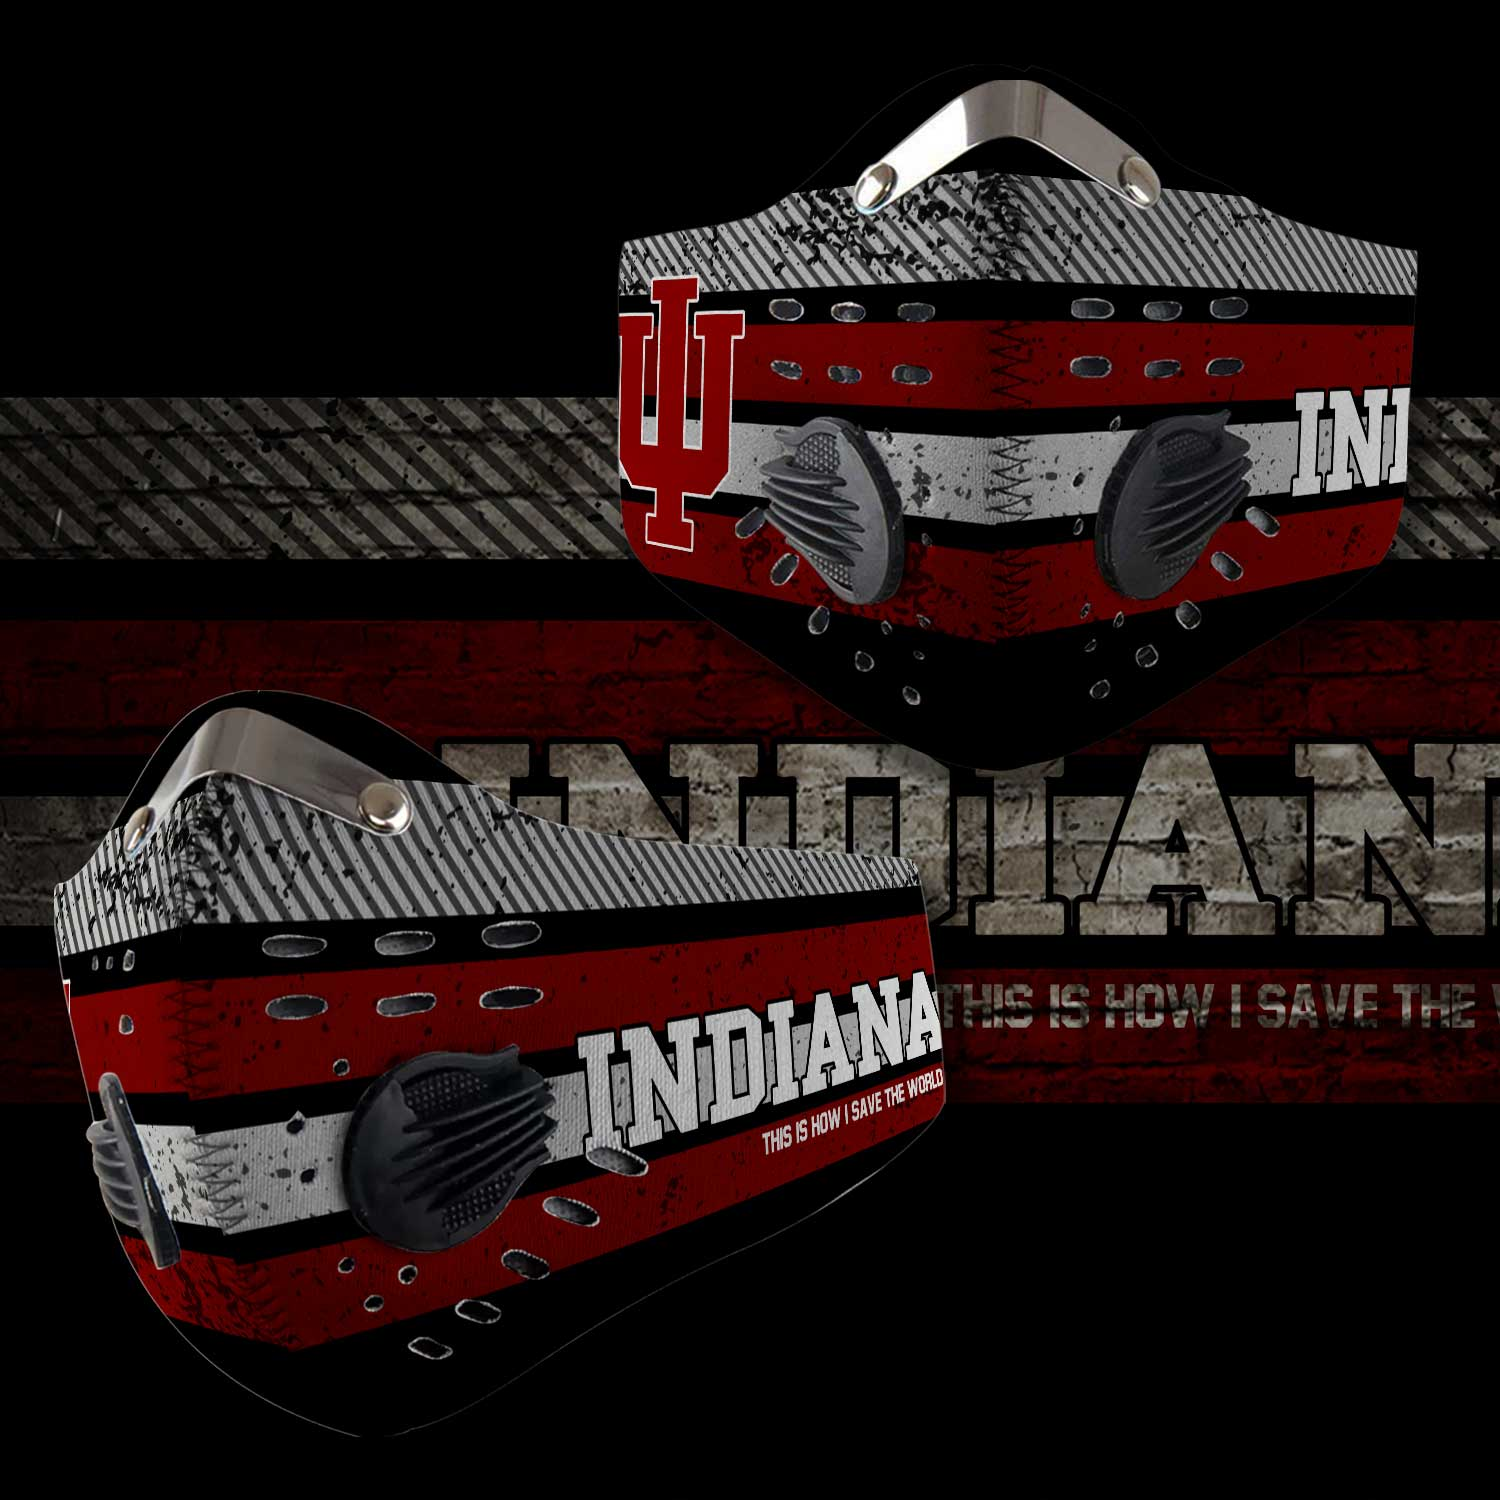 Indiana hoosiers this is how i save the world carbon filter face mask 1